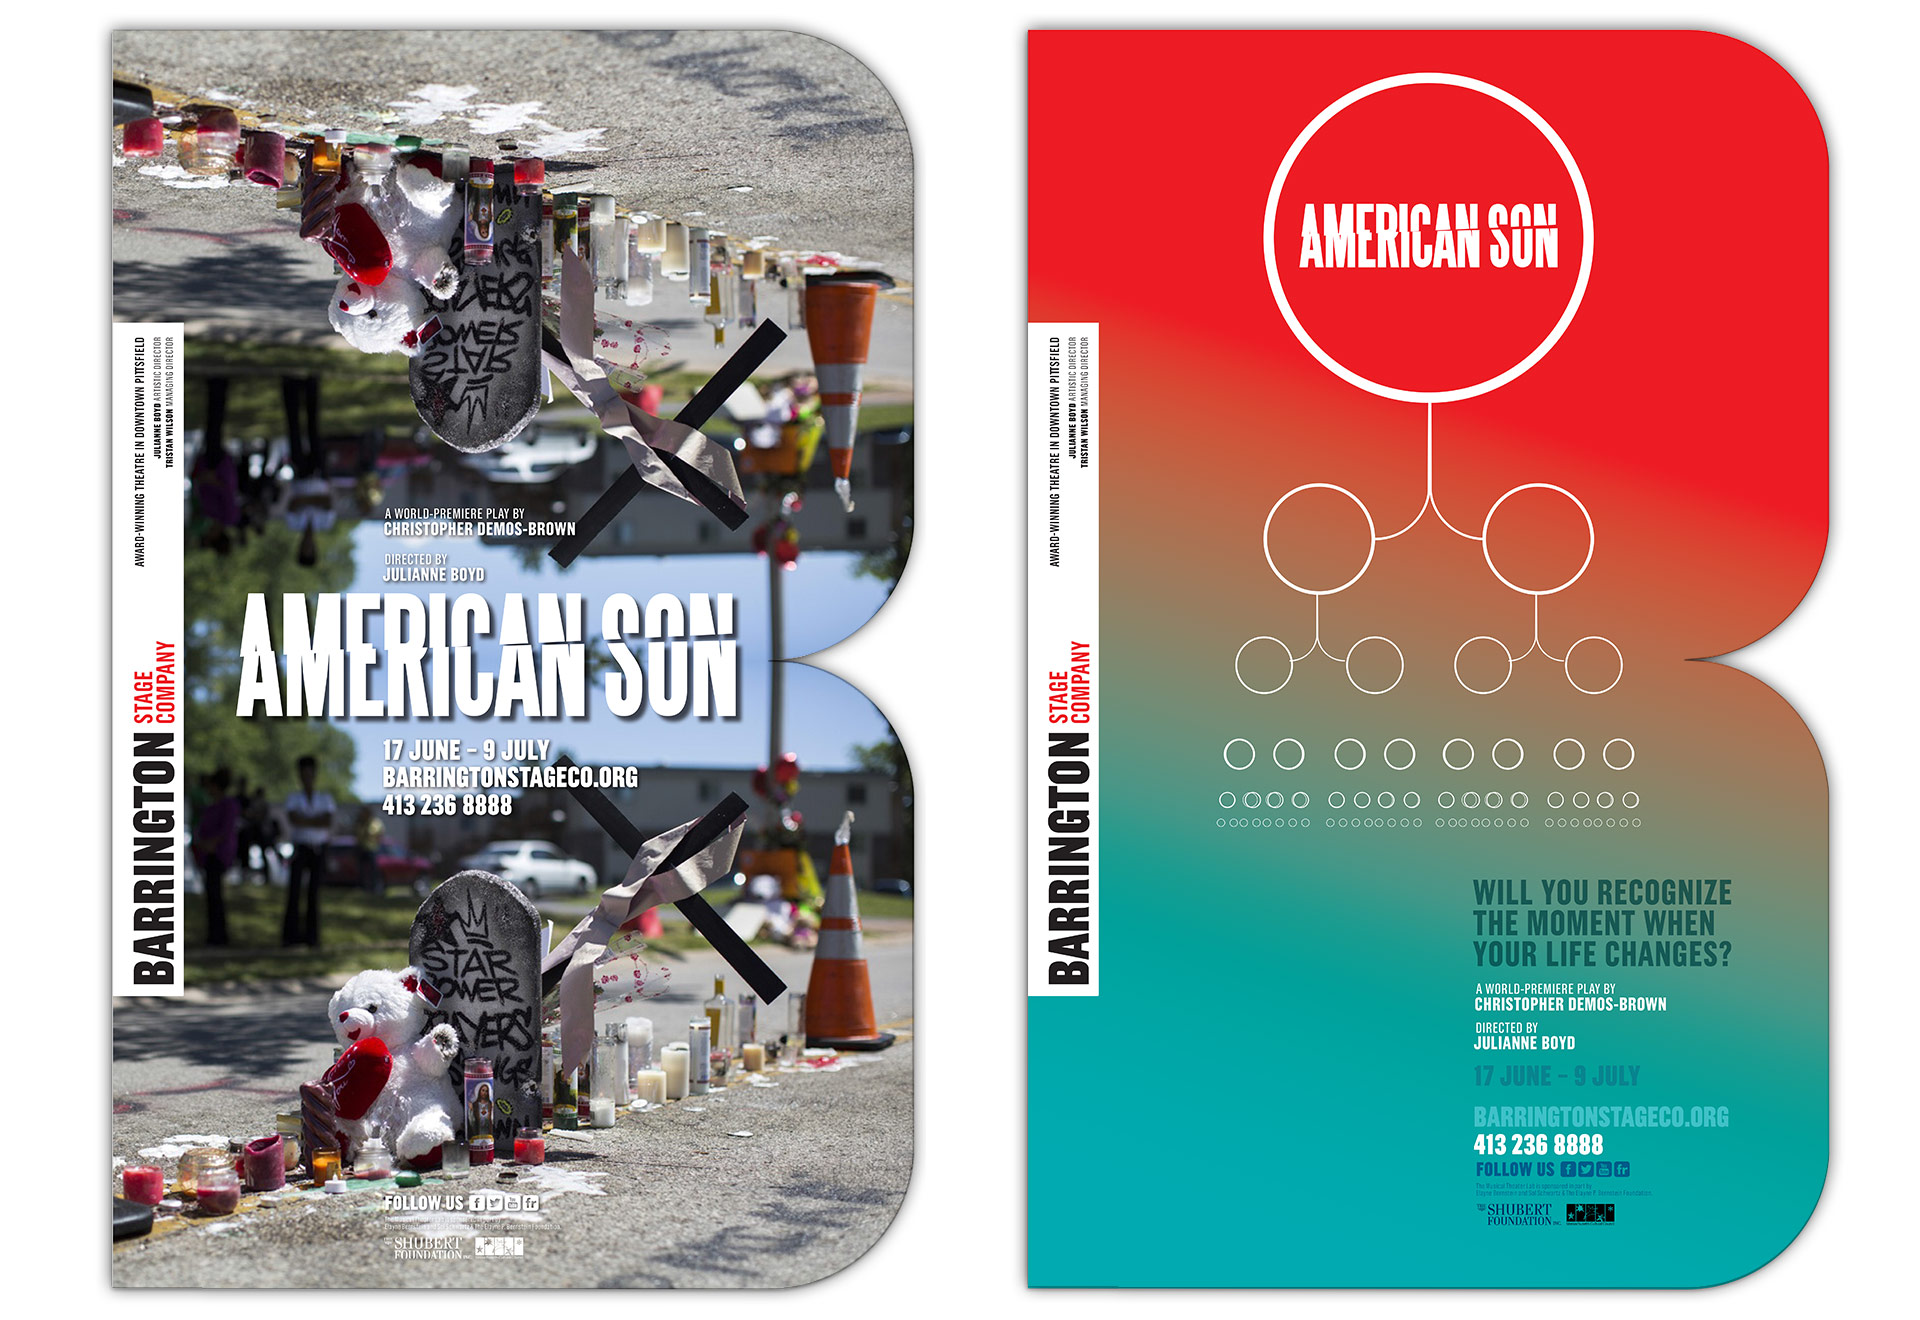 Barrington-comps-american-son-05.jpg